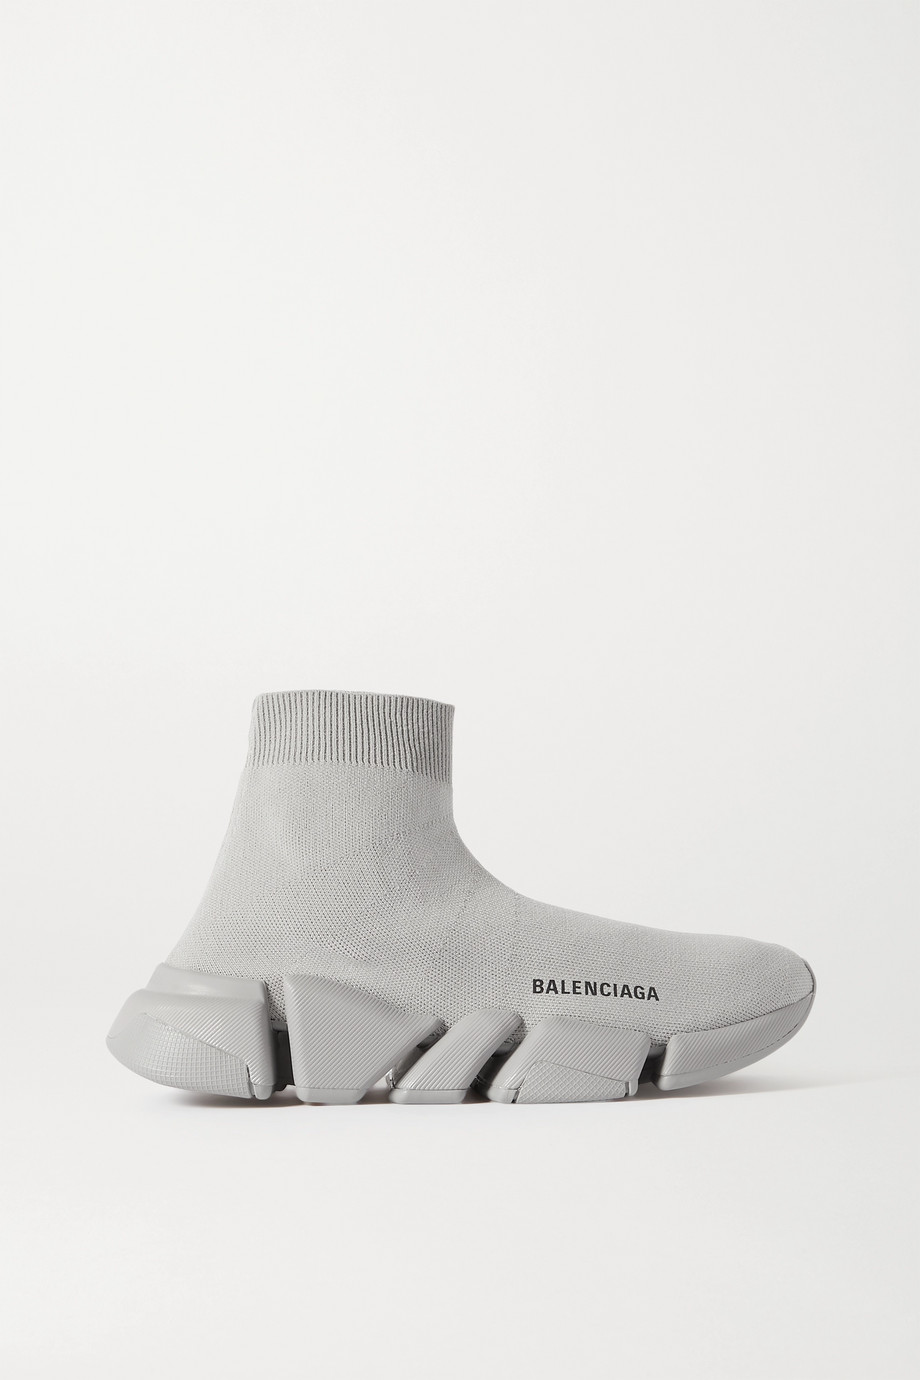 Balenciaga Baskets montantes en mailles stretch Speed LT 2.0